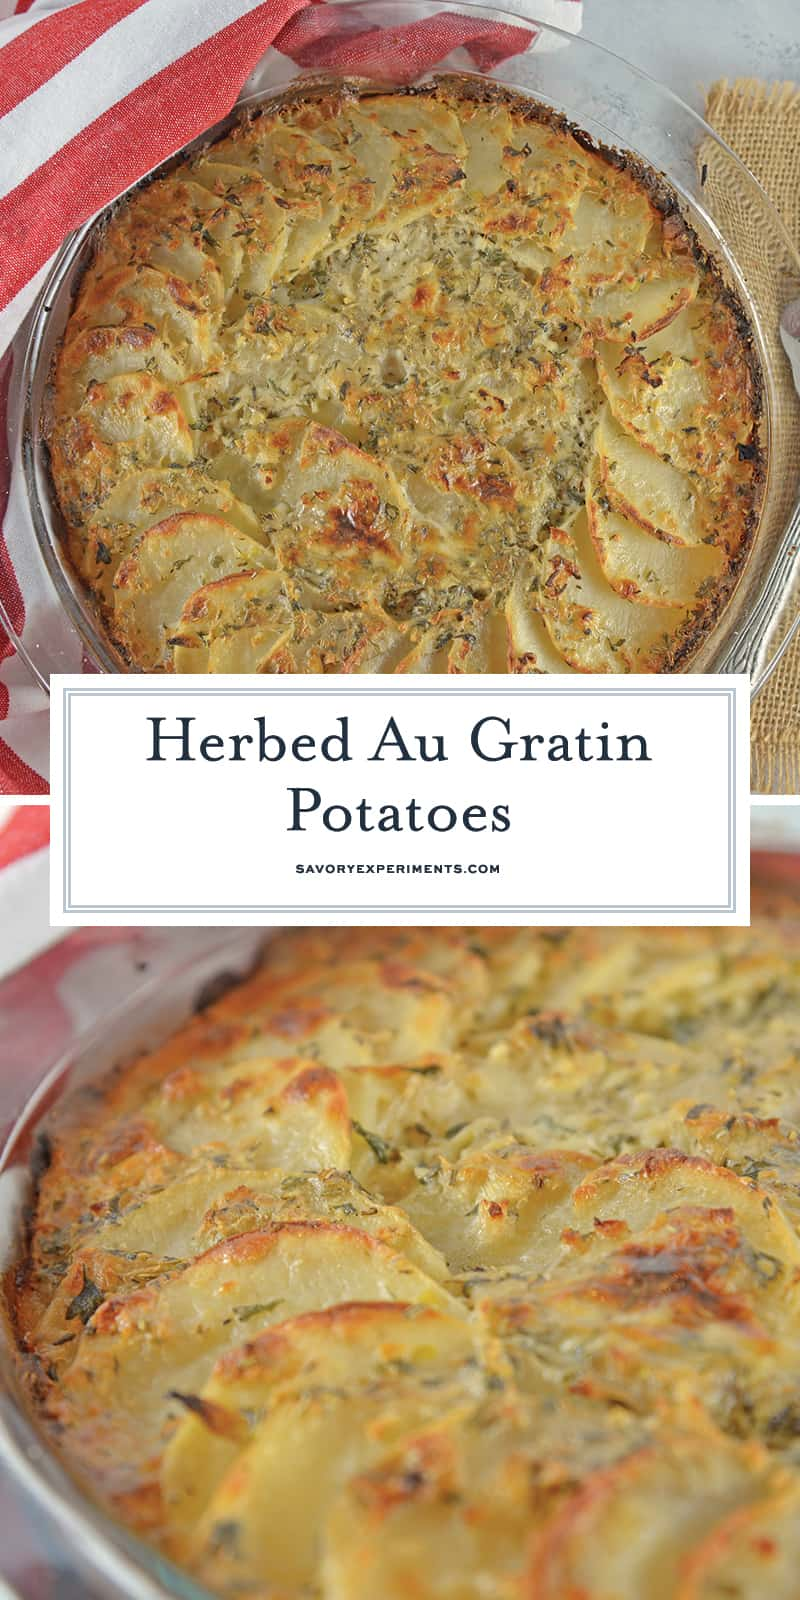 Discussion on this topic: Herbed Potatoes Au Gratin, herbed-potatoes-au-gratin/